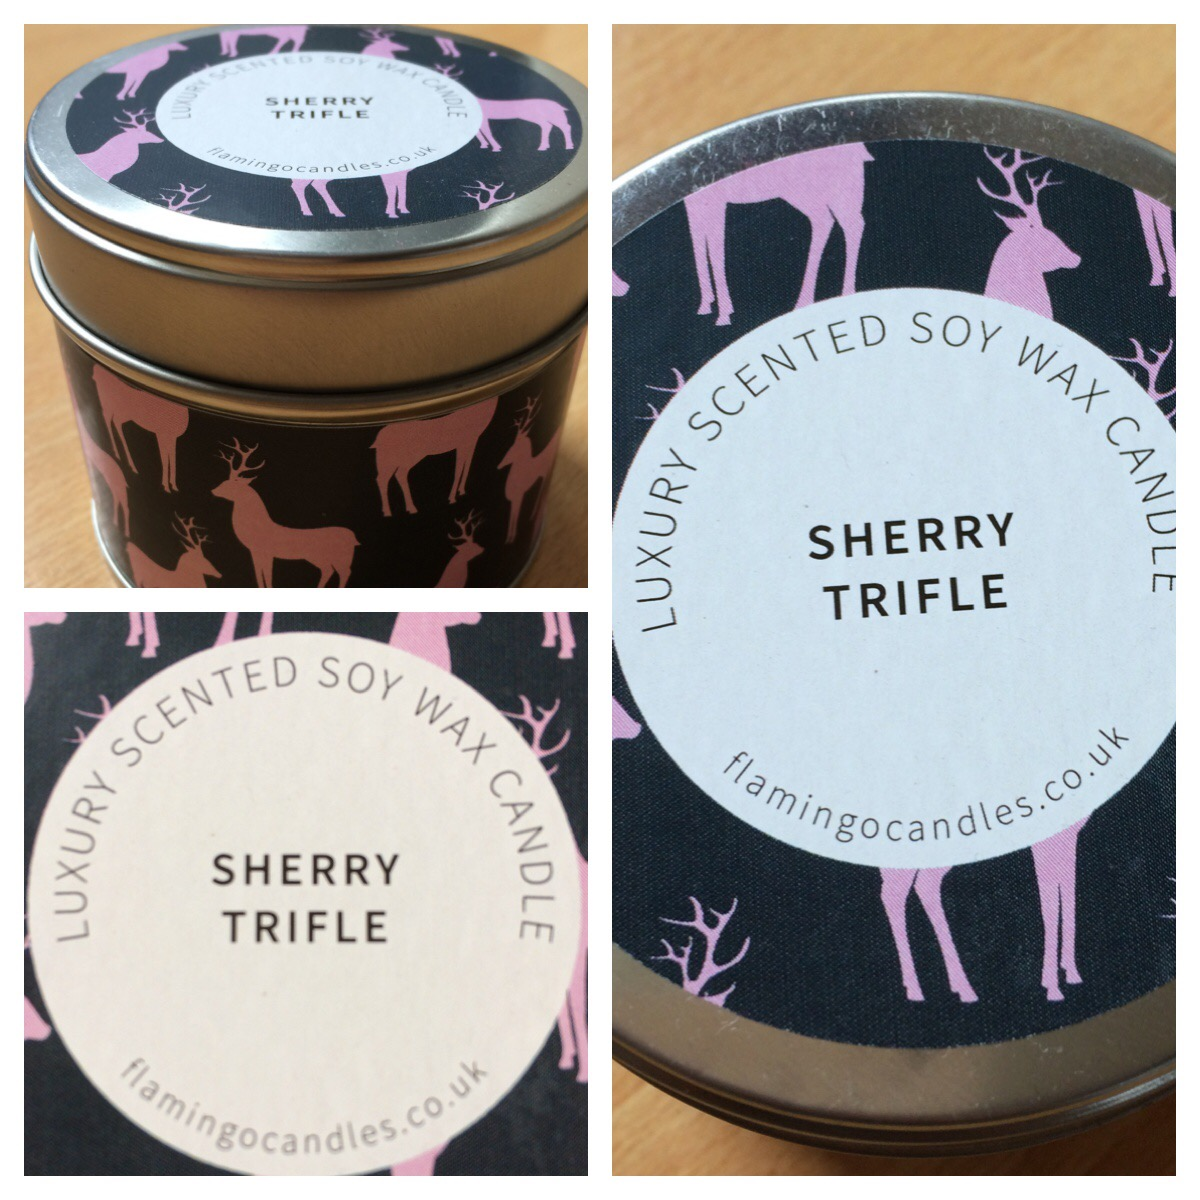 Flamingo Candles Sherry Trifle Stag Print Tin Candle Review